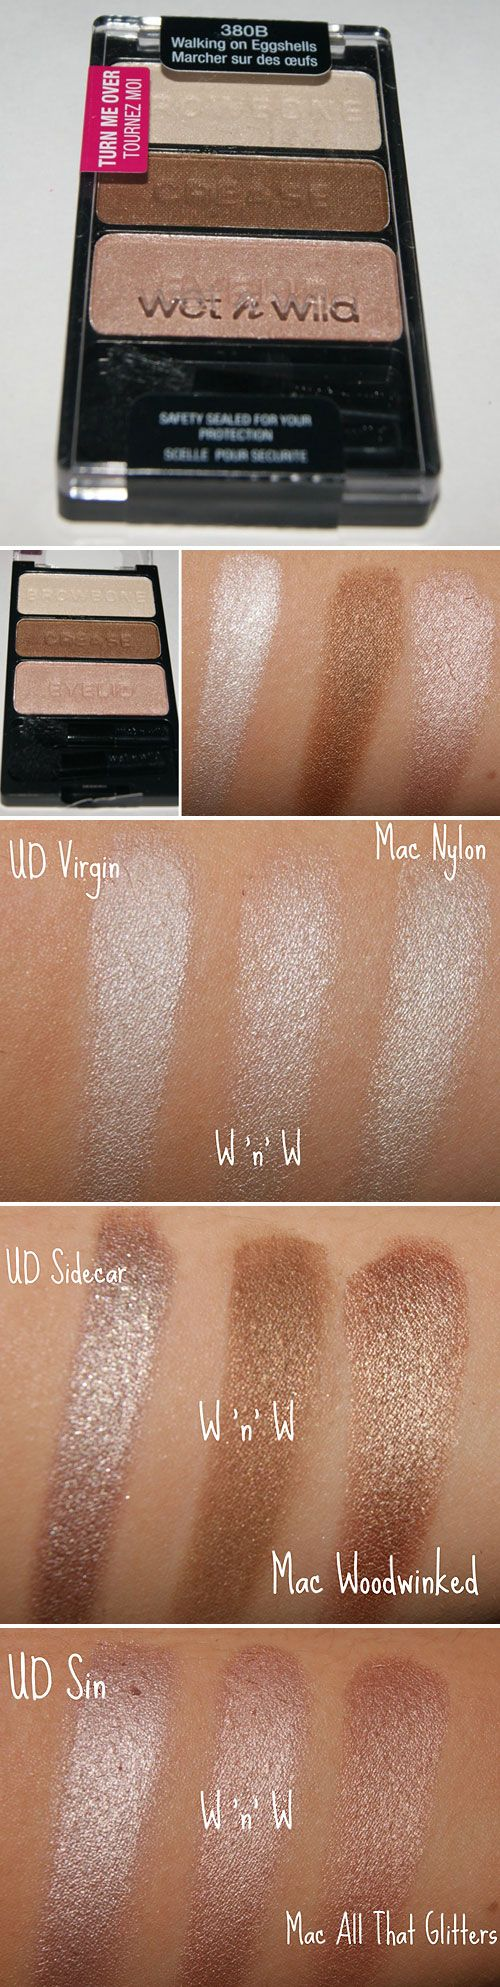 I have this wet n' wild palette and it's seriously so dang pigmented and it doesn't crease! It's better than some of my shephora shadows.